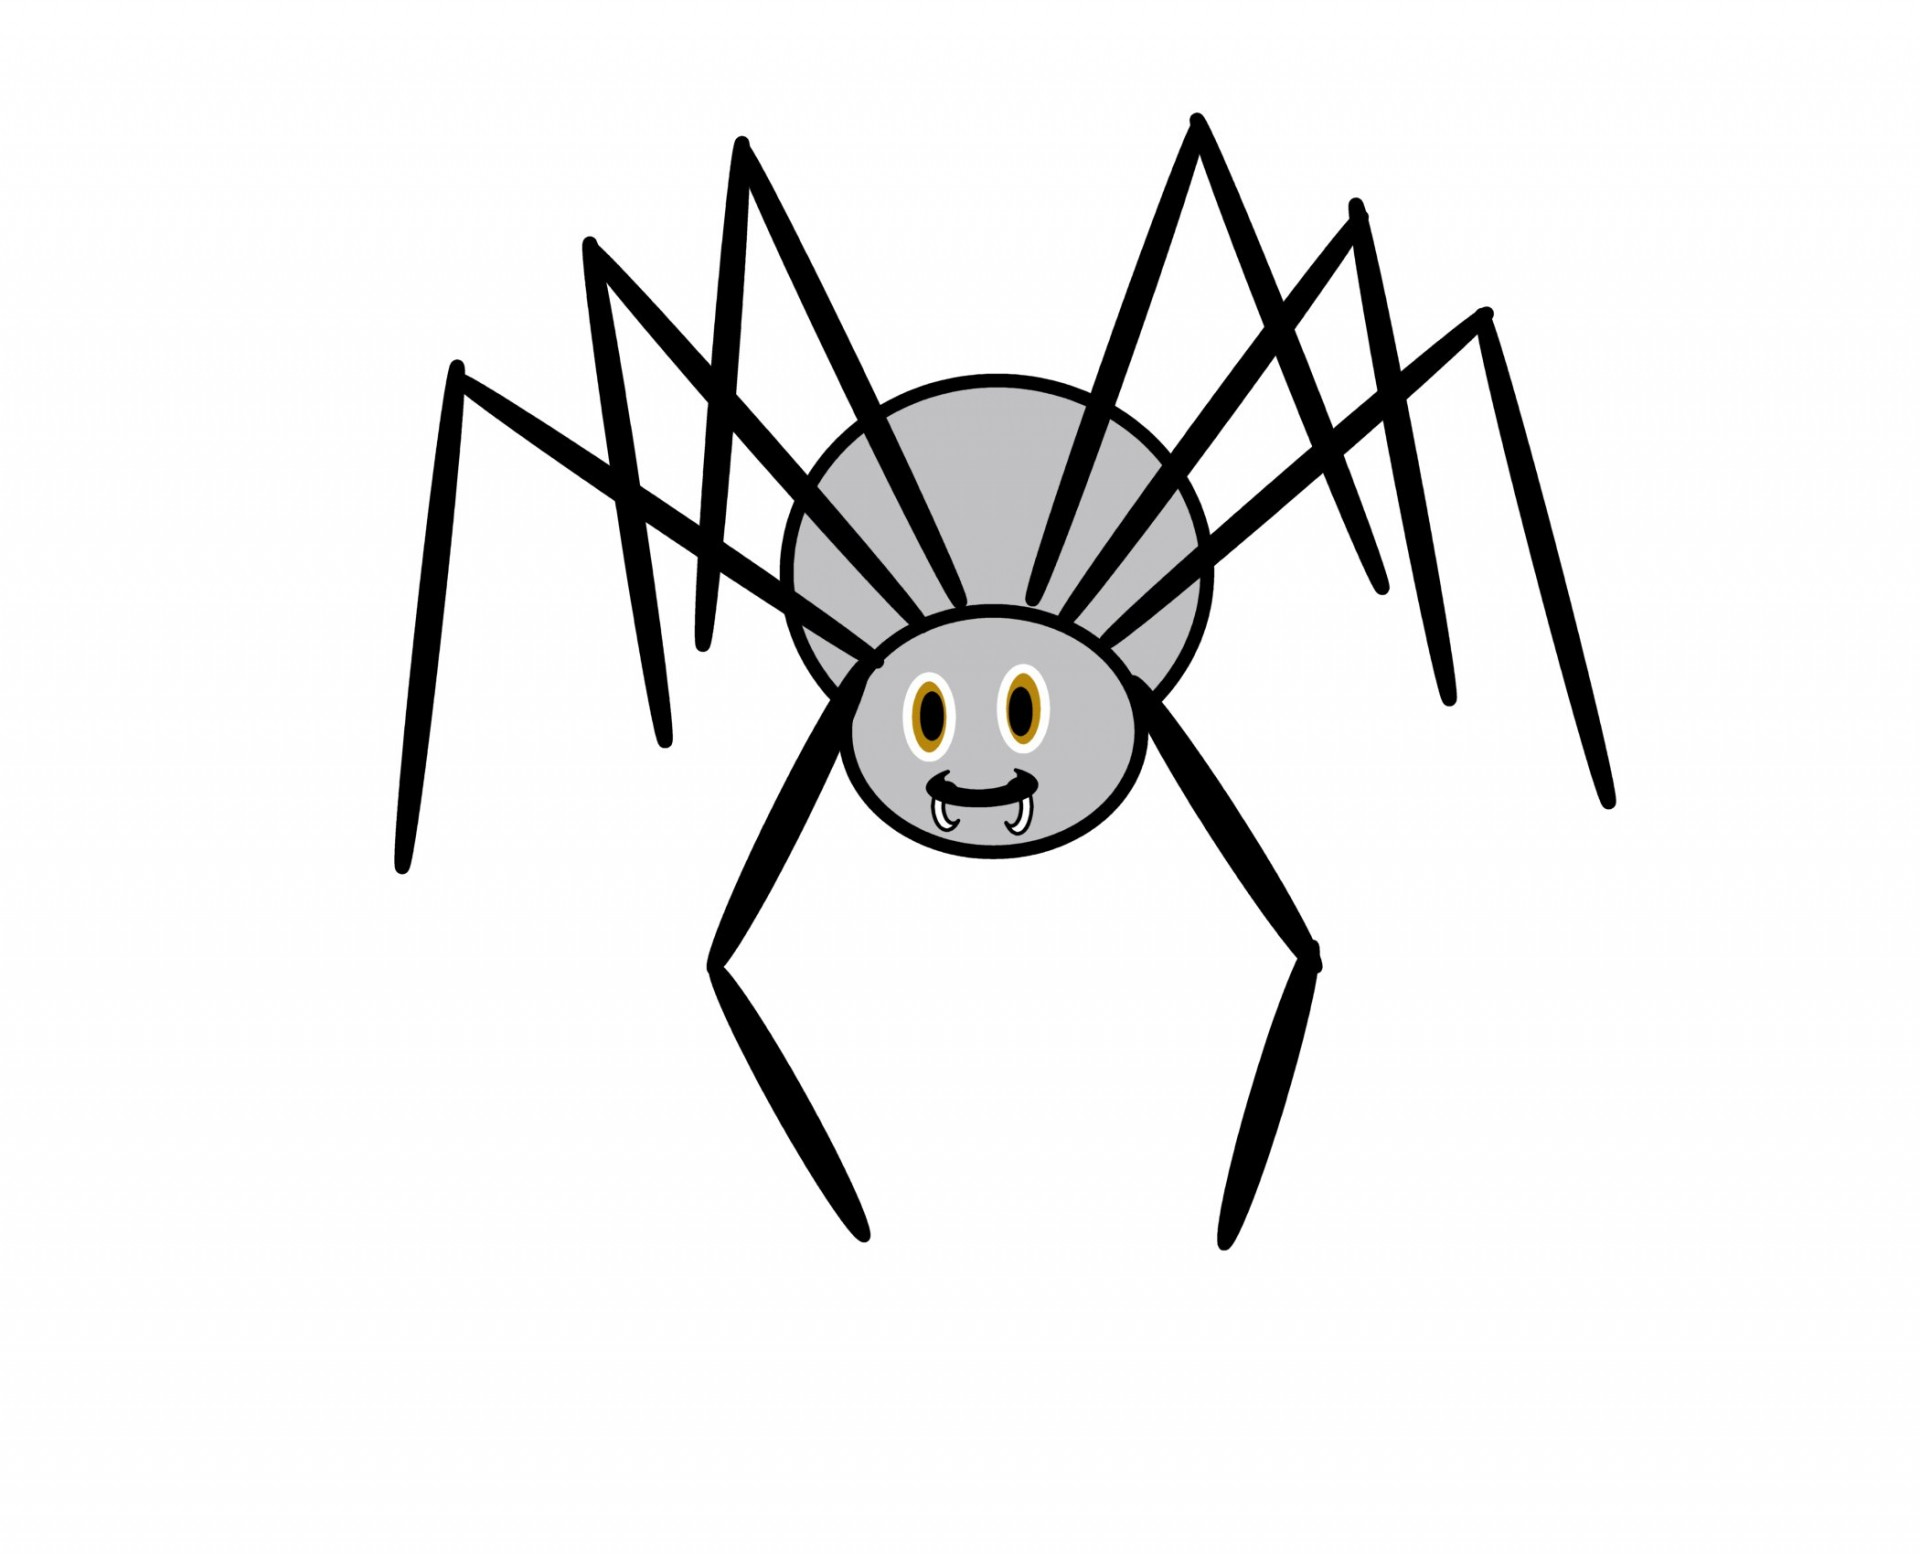 Clip Art Spider Free Stock Photo